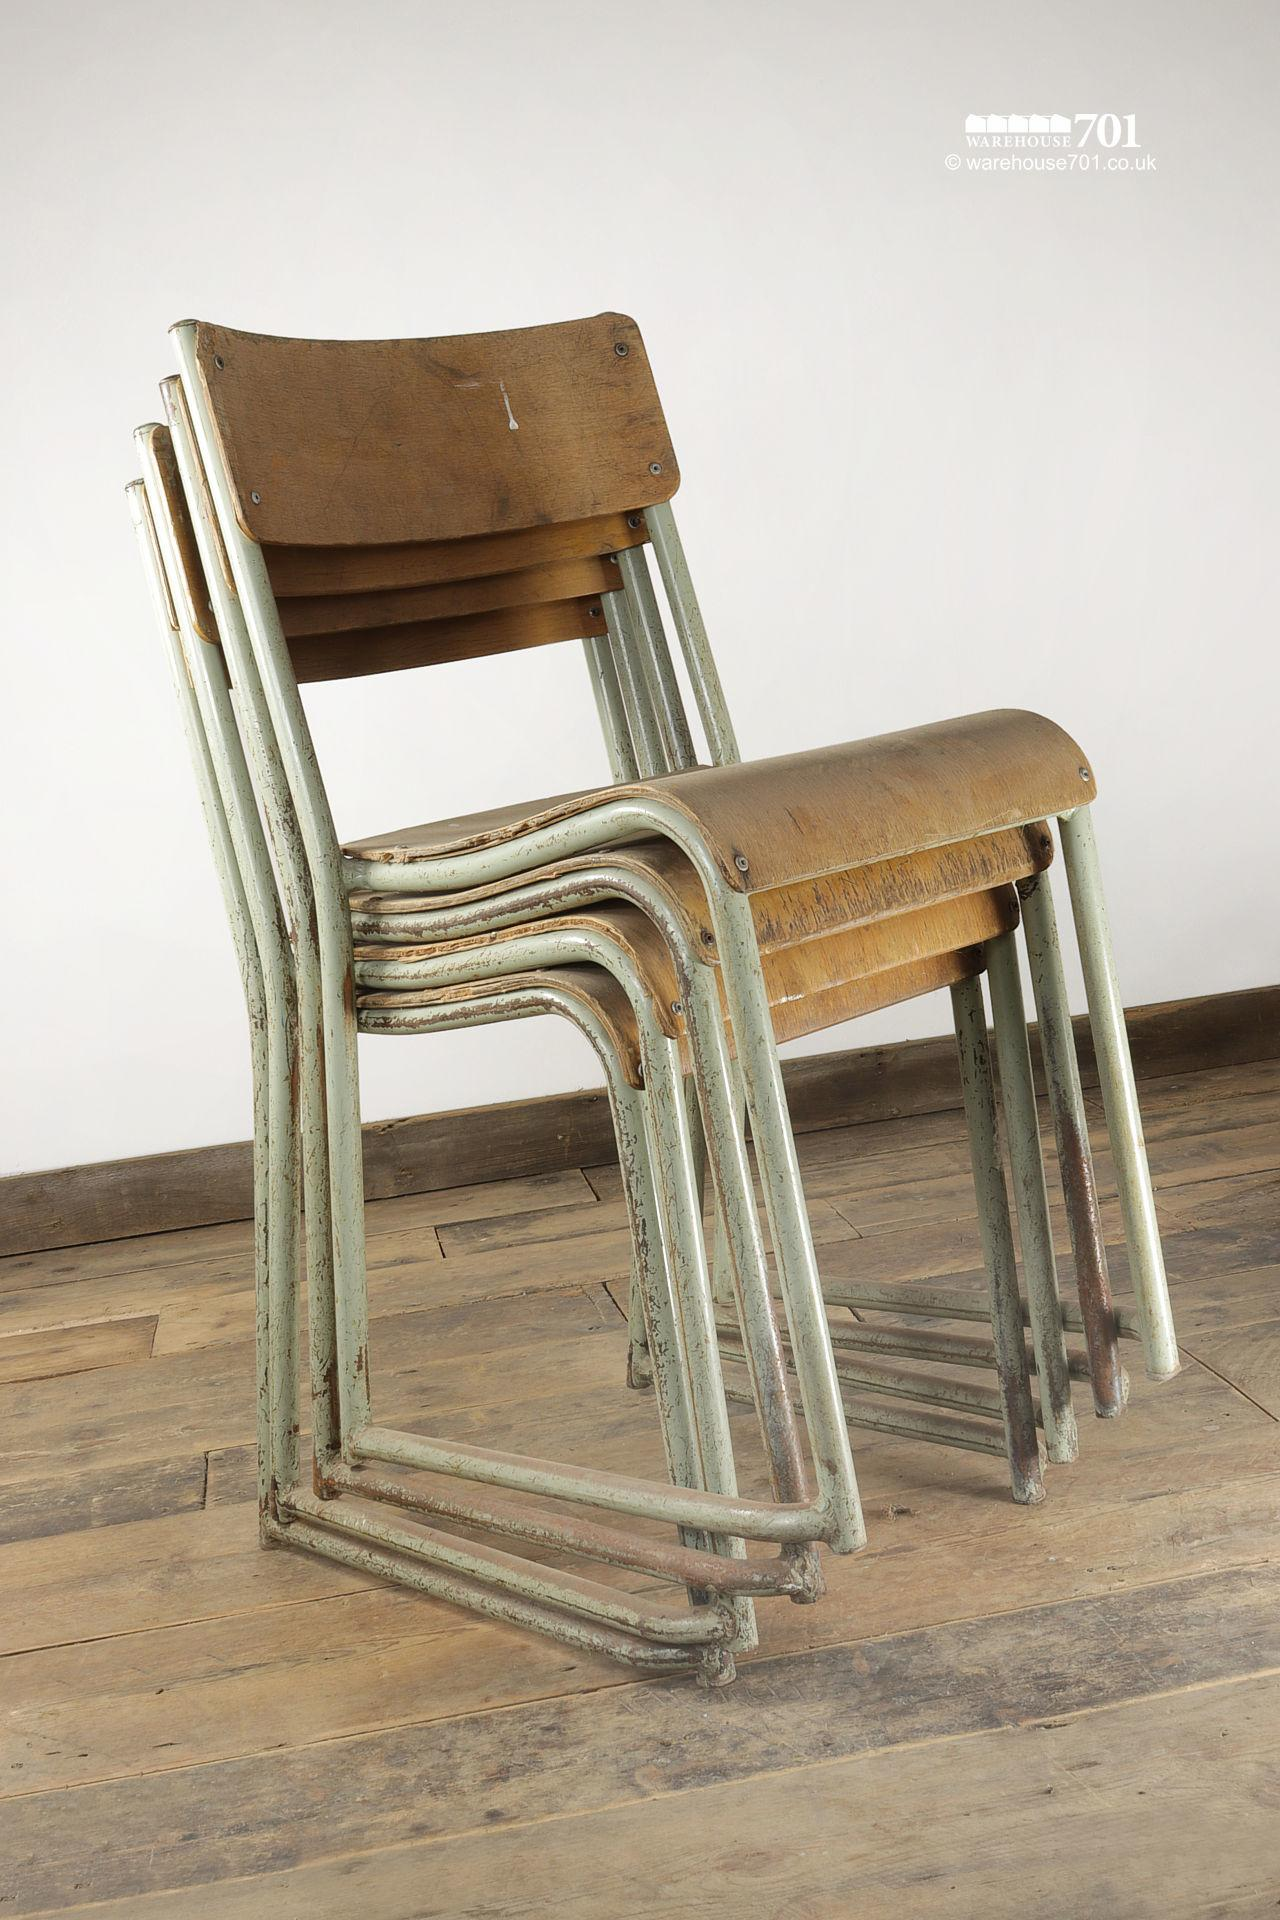 Vintage Sage Green Tubular Steel and Ply Stacking Chairs #3